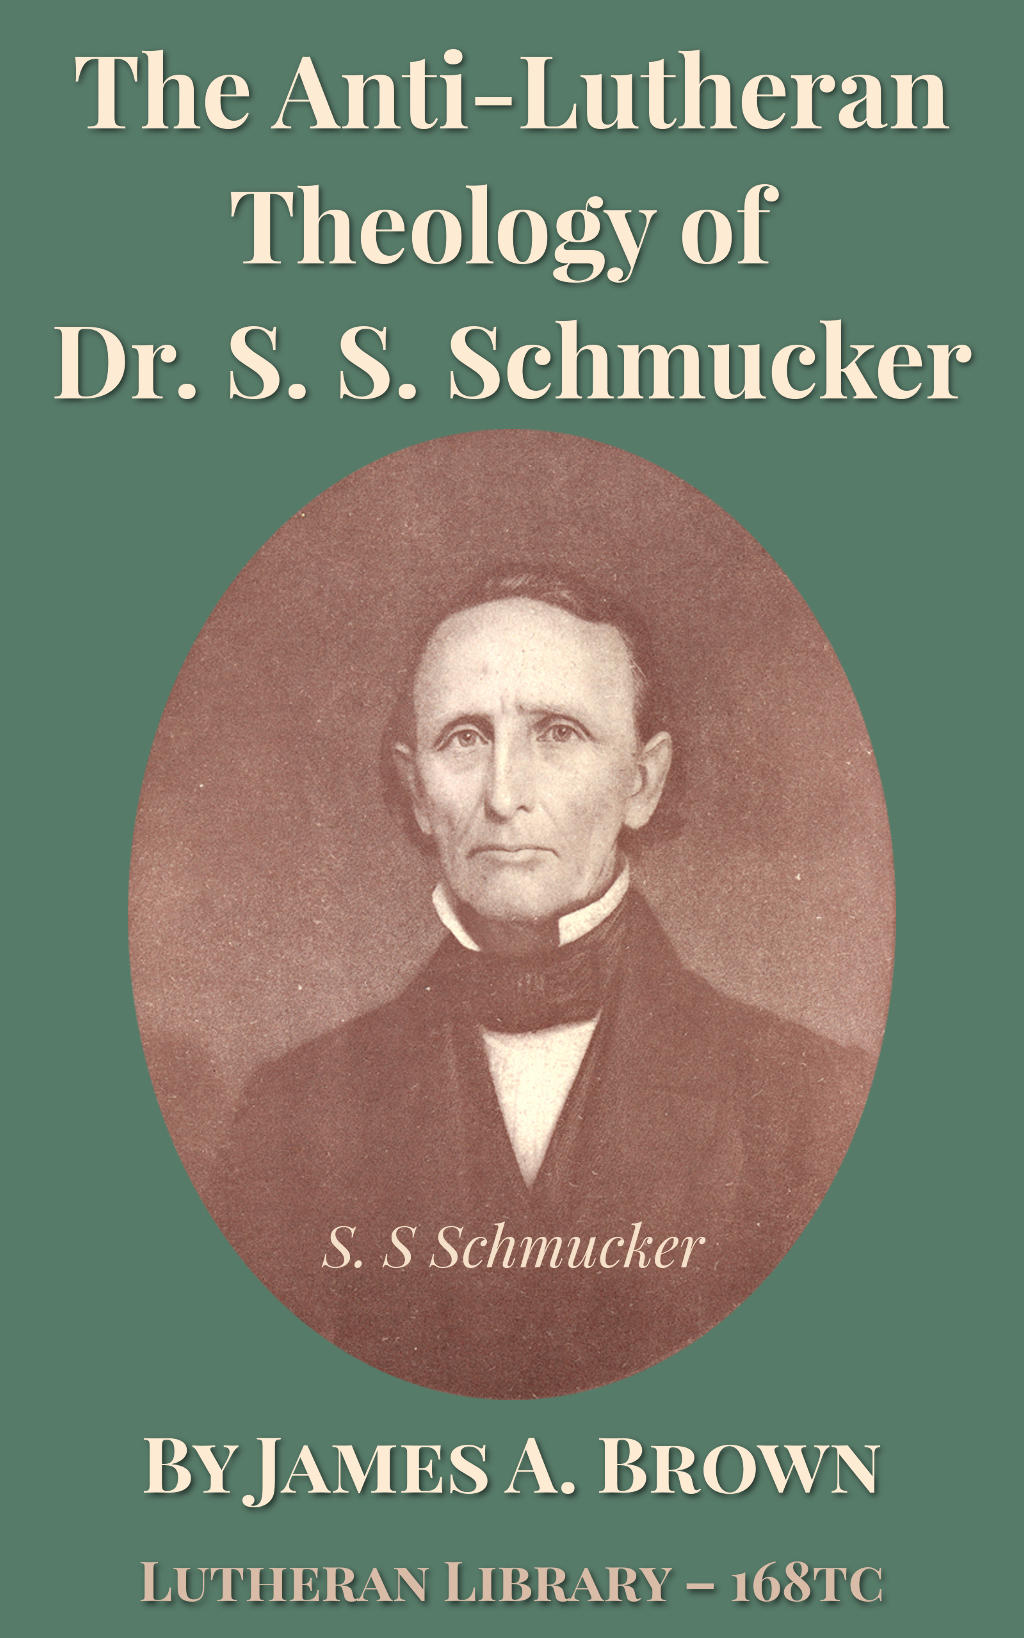 The Anti-Lutheran Theology of Dr. S. S. Schmucker by James Allen Brown (1821-1882)